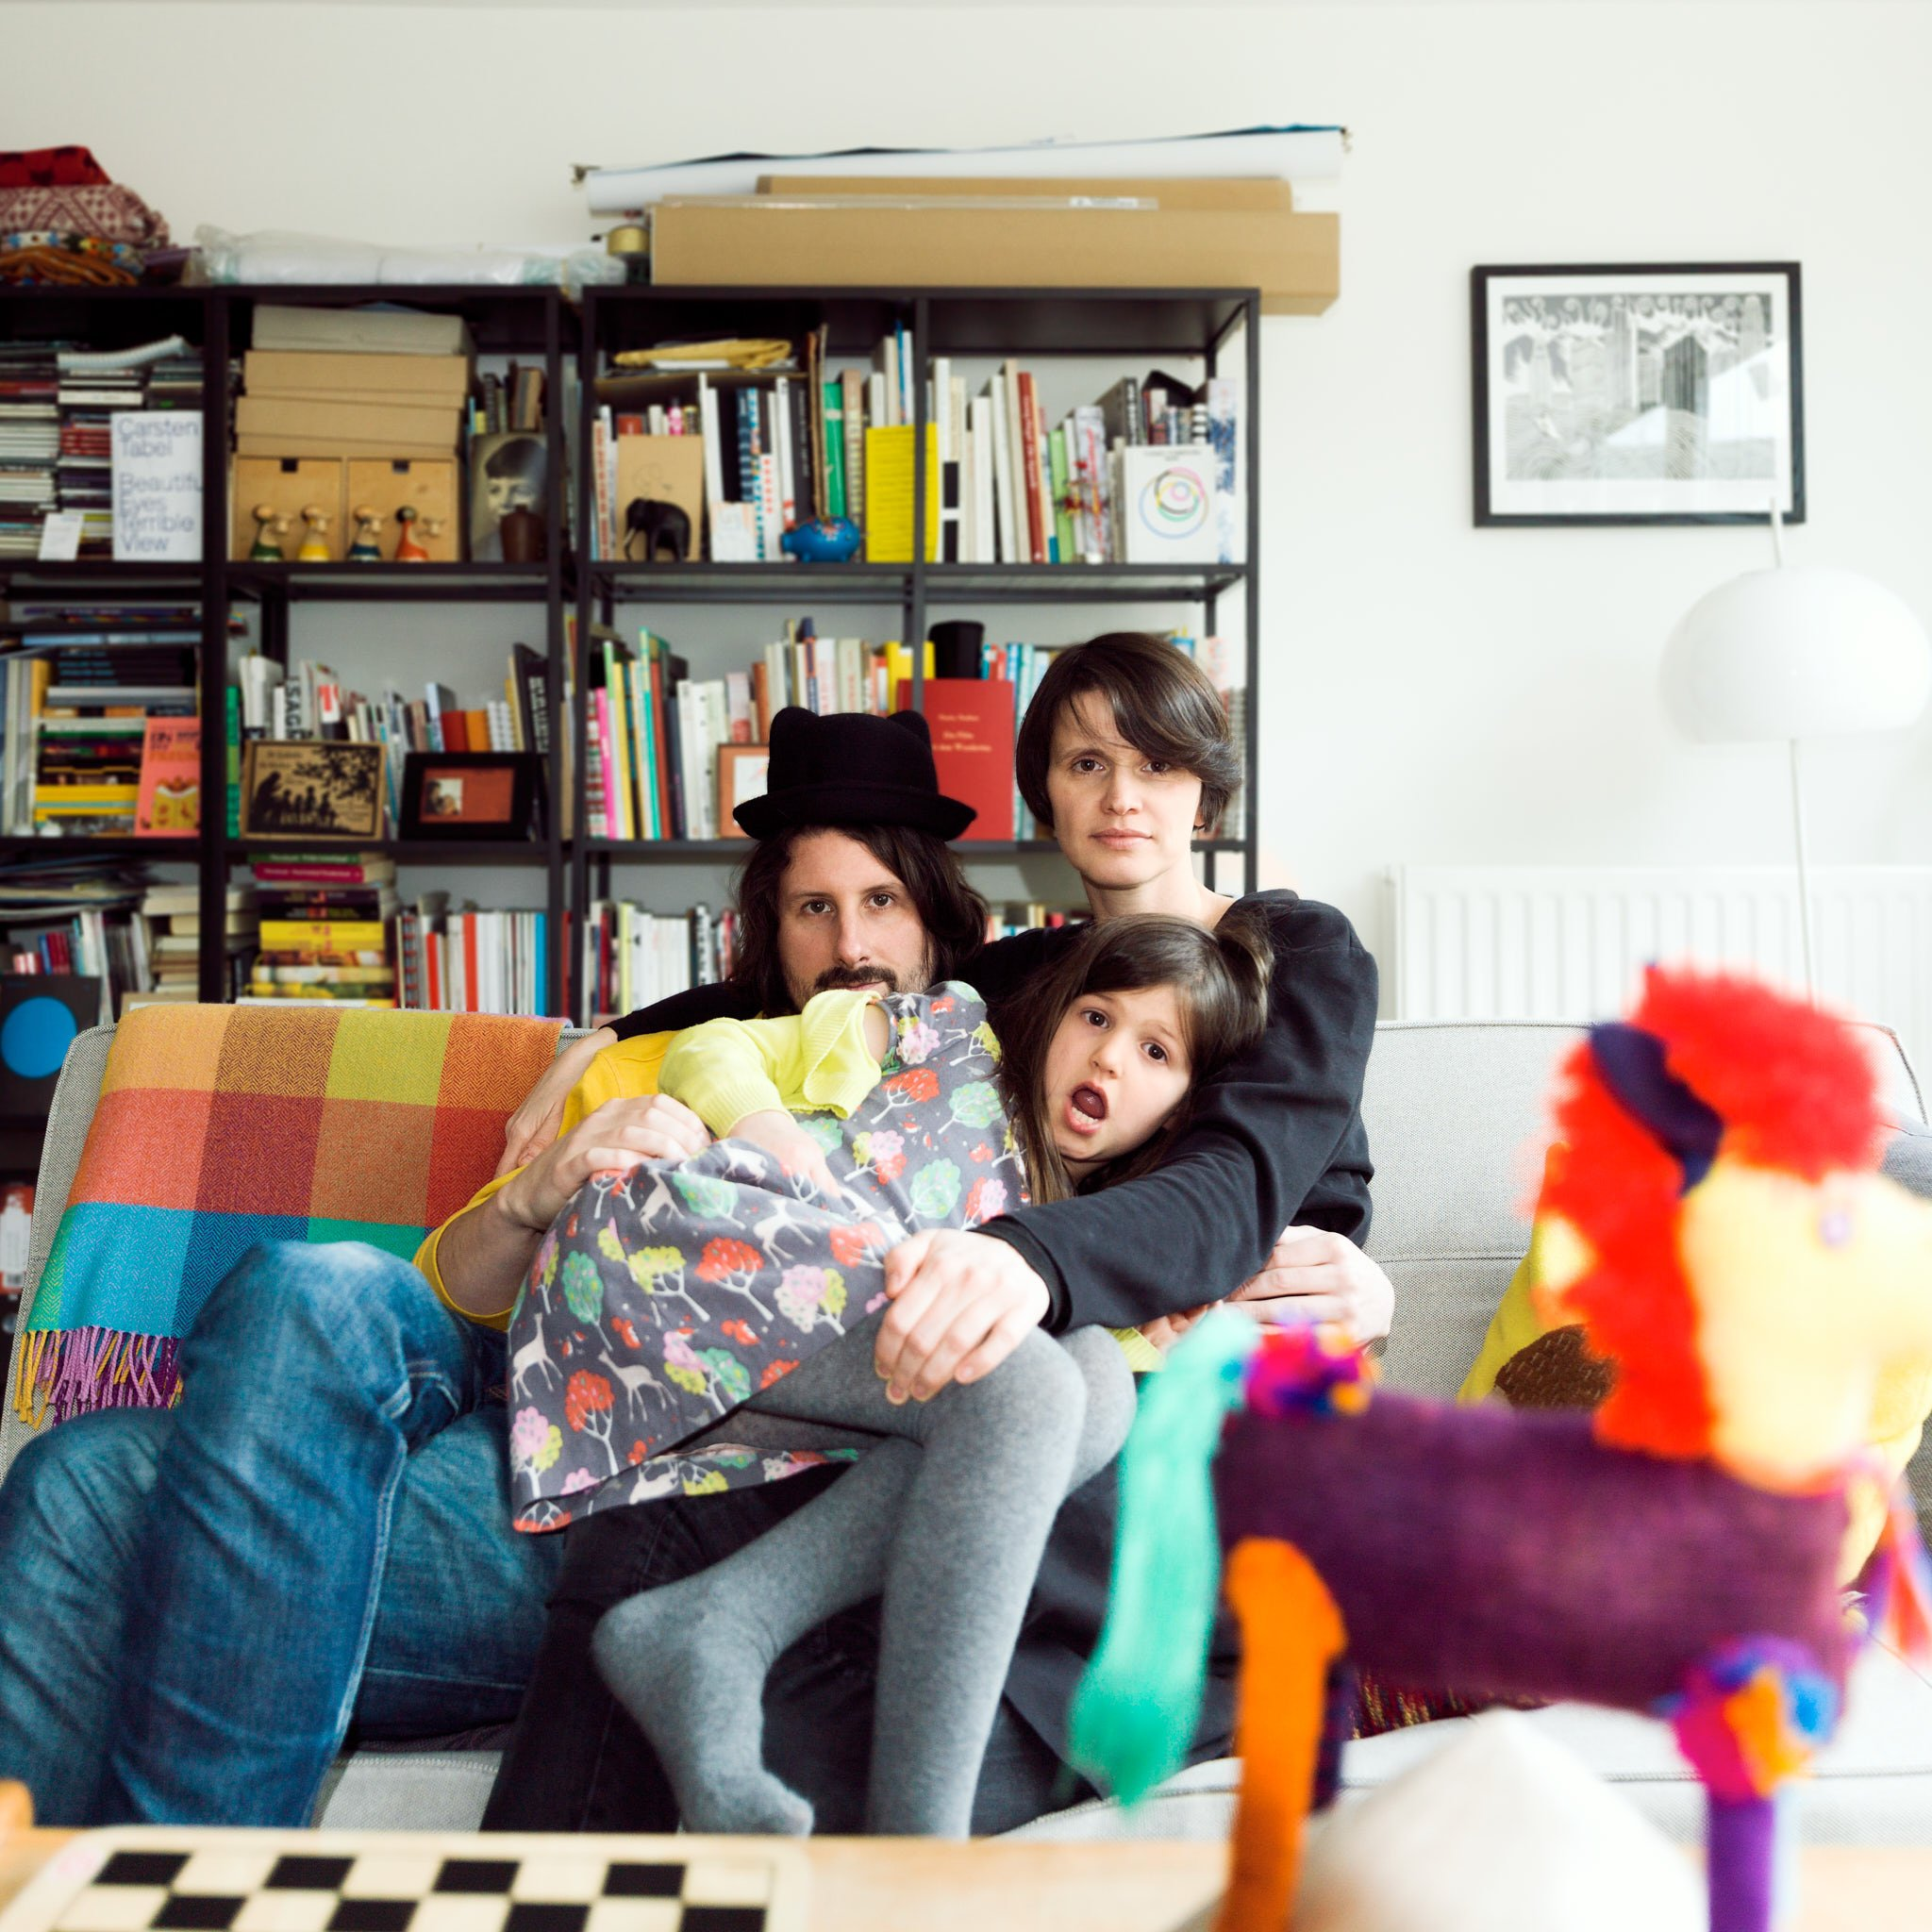 Anja, Dom and Molly – graphic designer, academic and sound designer – photographed at home in South London for Project Living Abroad